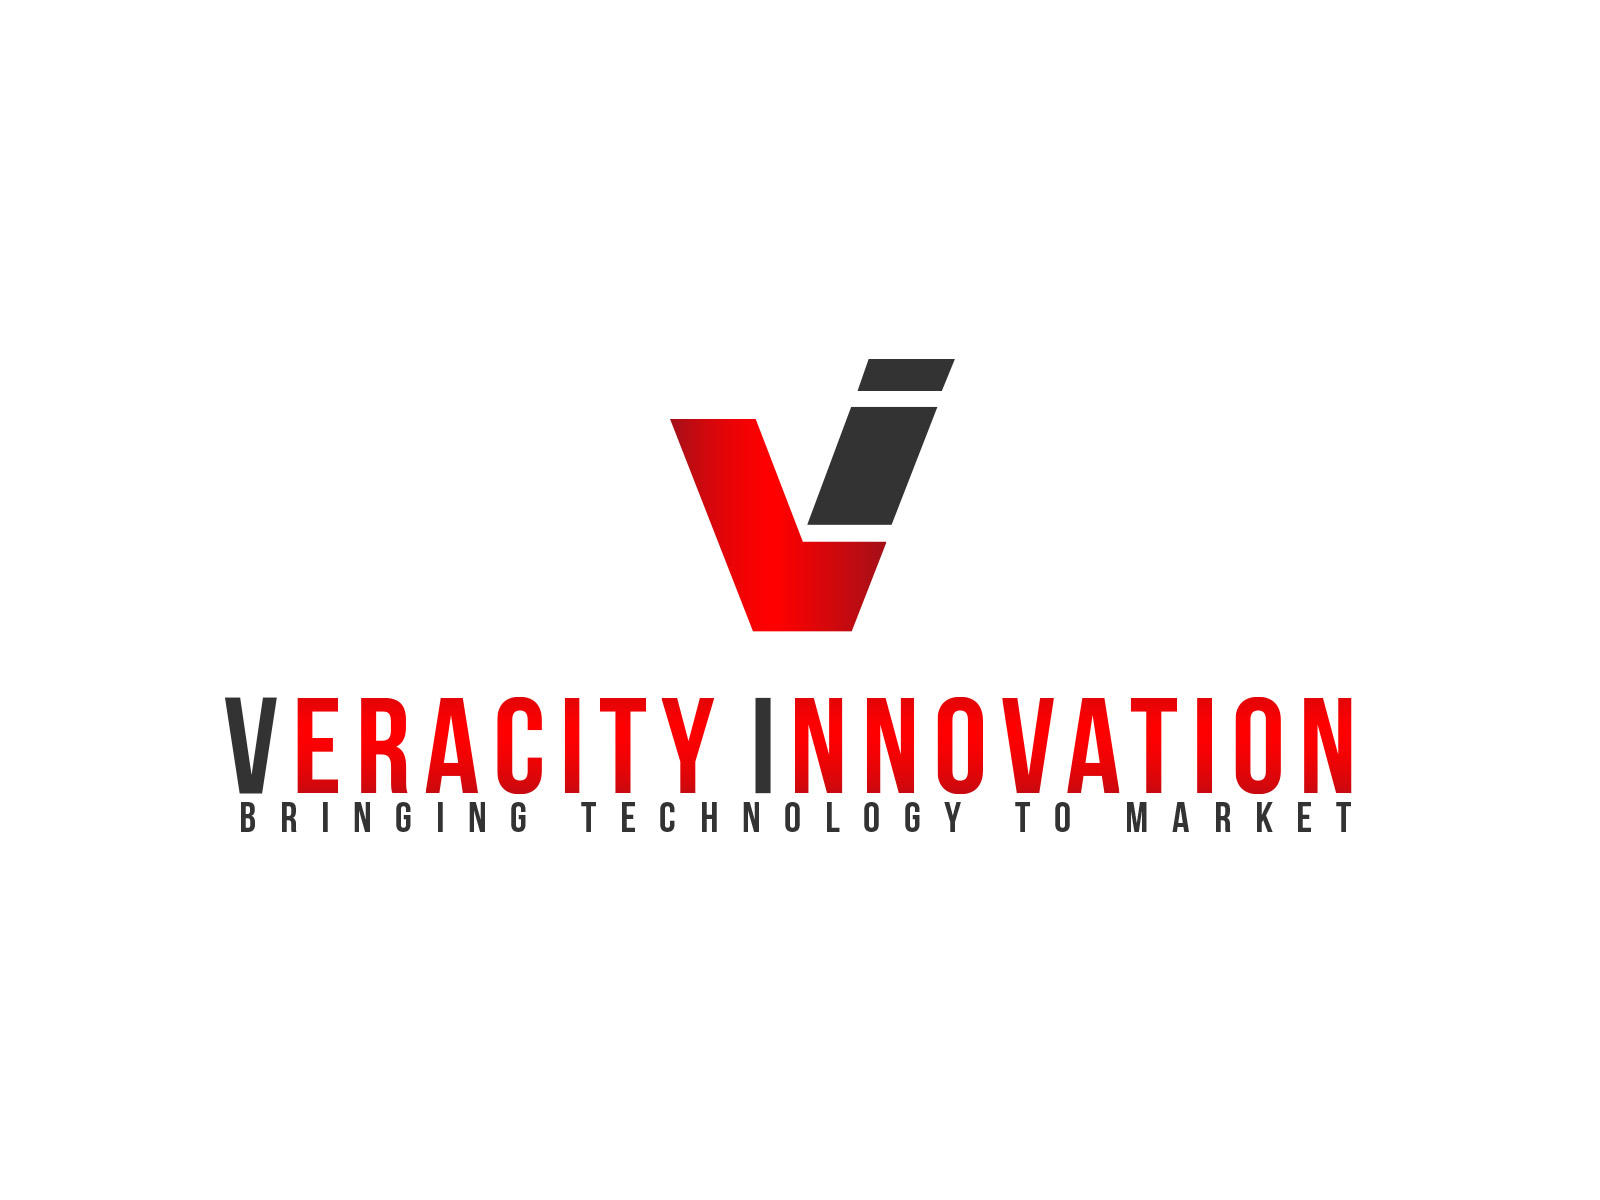 Logo Design by olii - Entry No. 307 in the Logo Design Contest Creative Logo Design for Veracity Innovation, LLC.